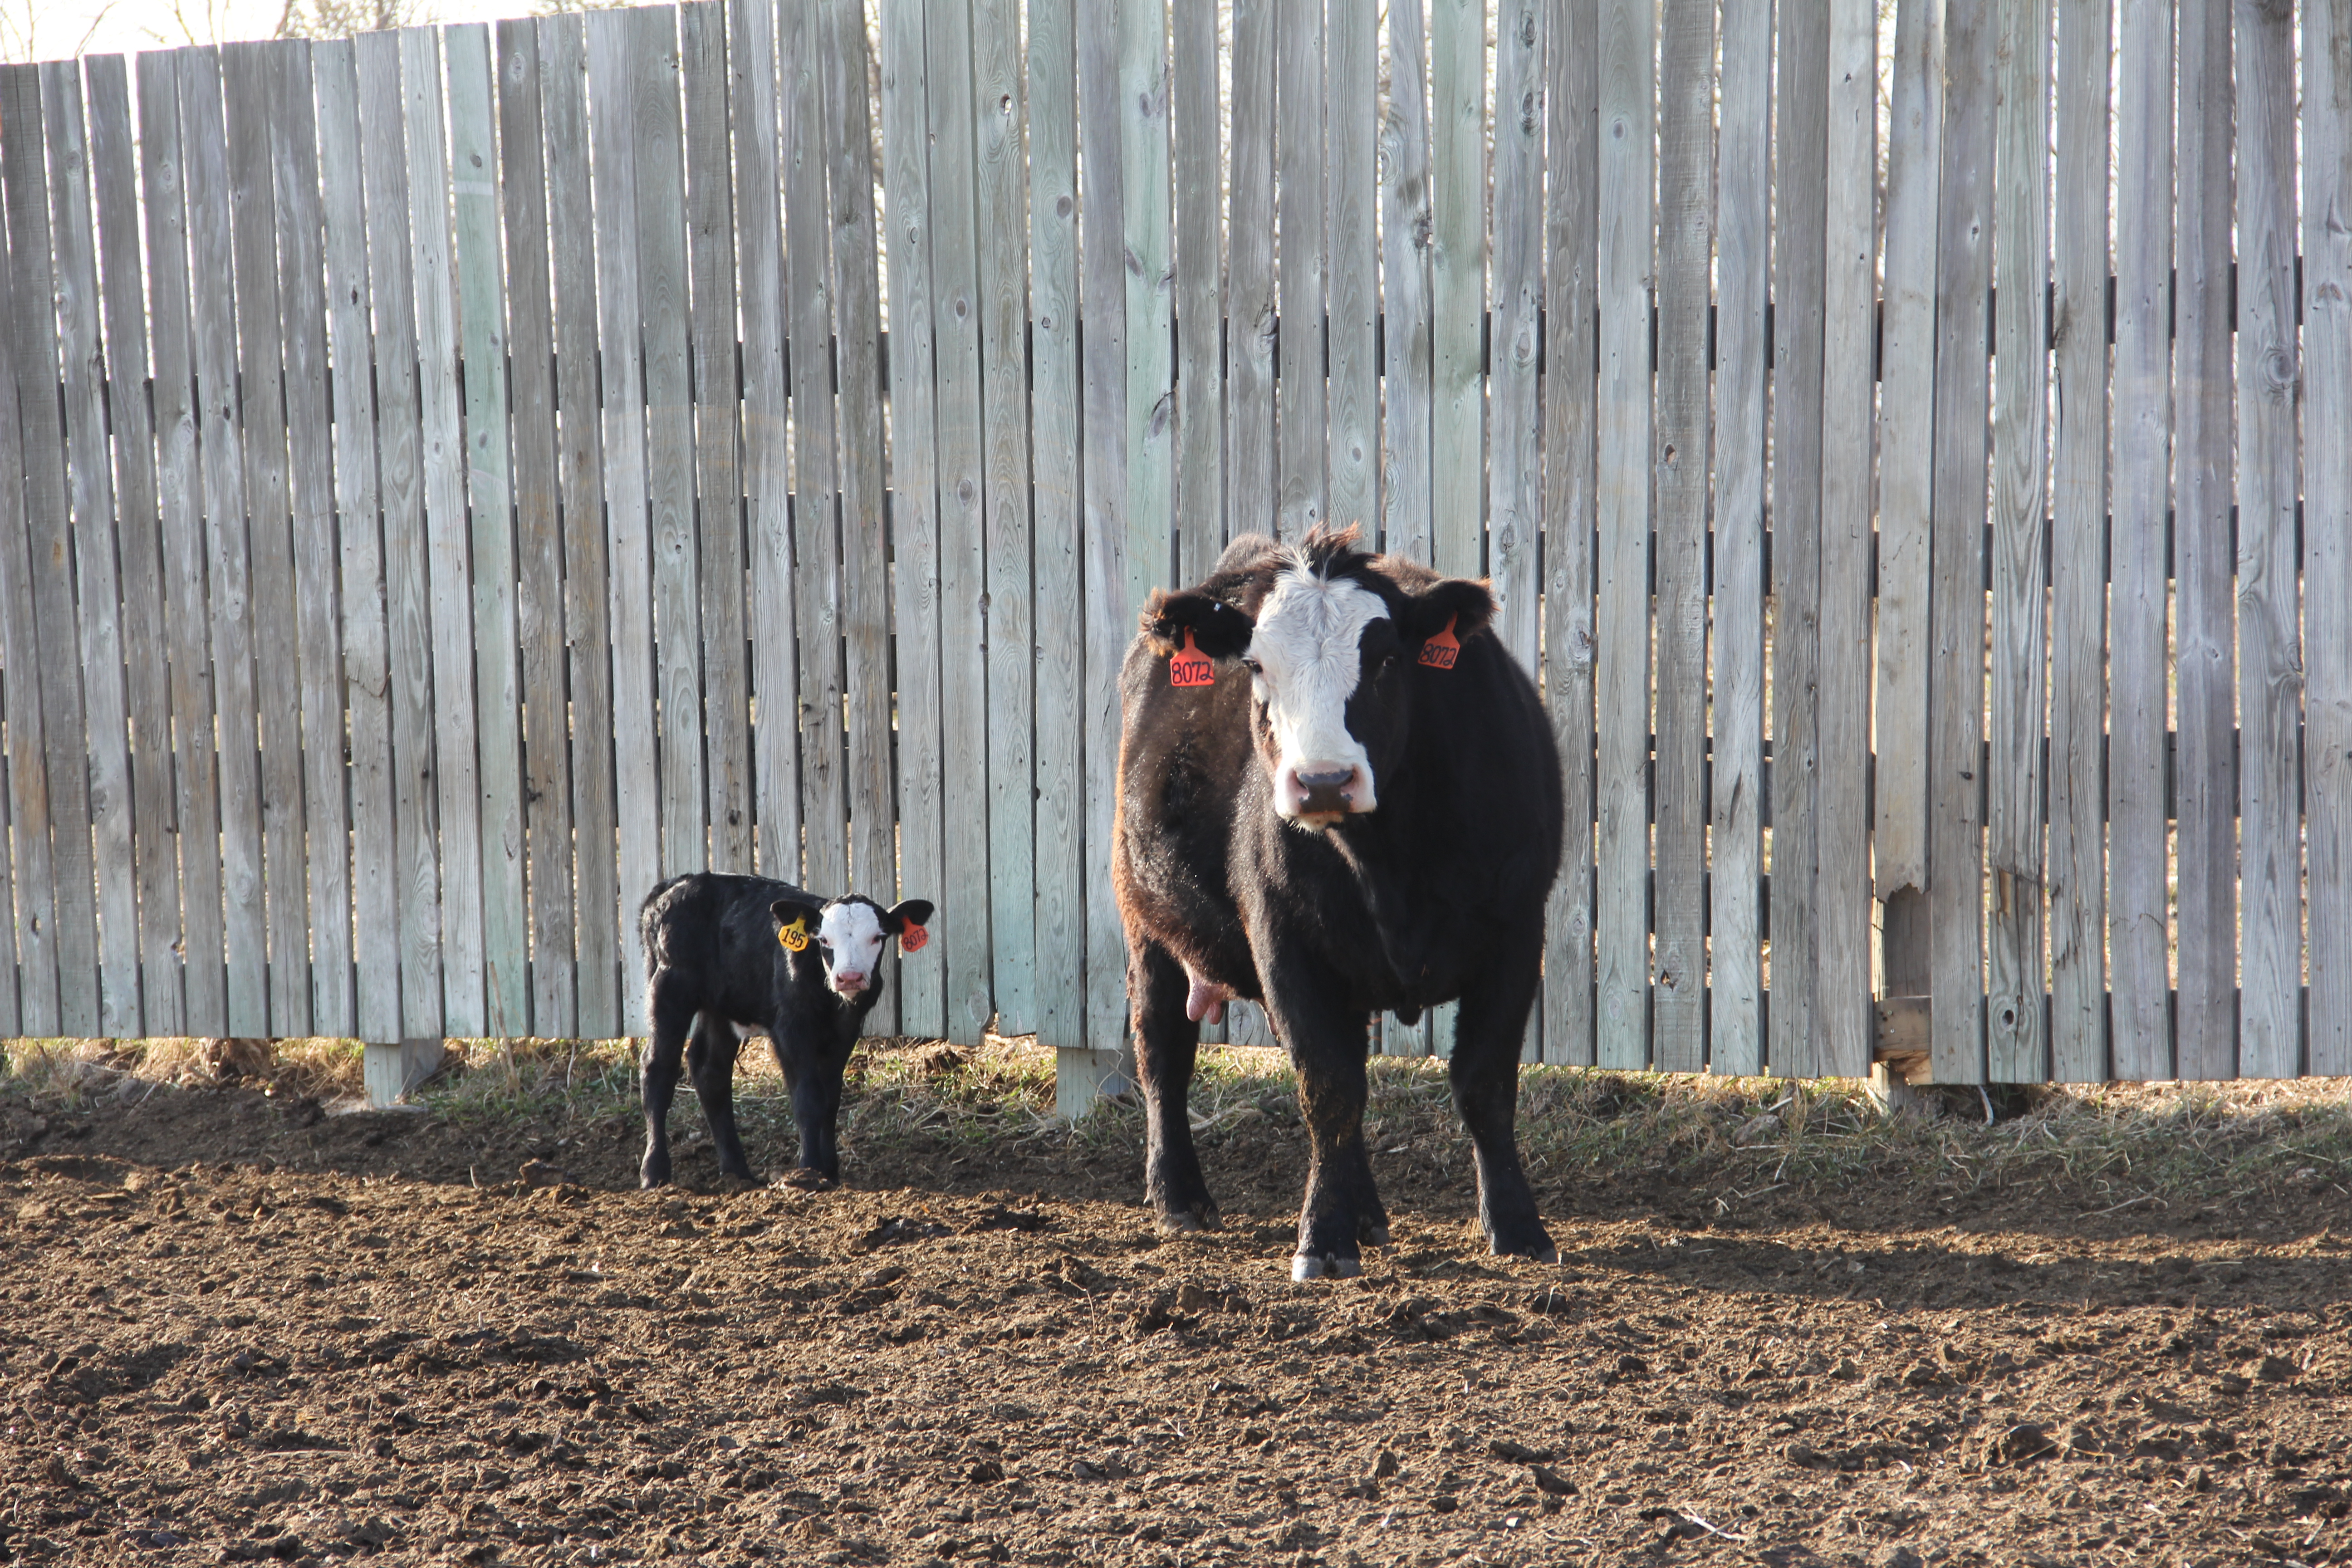 Cow and Calf in Front of Wooden Fence